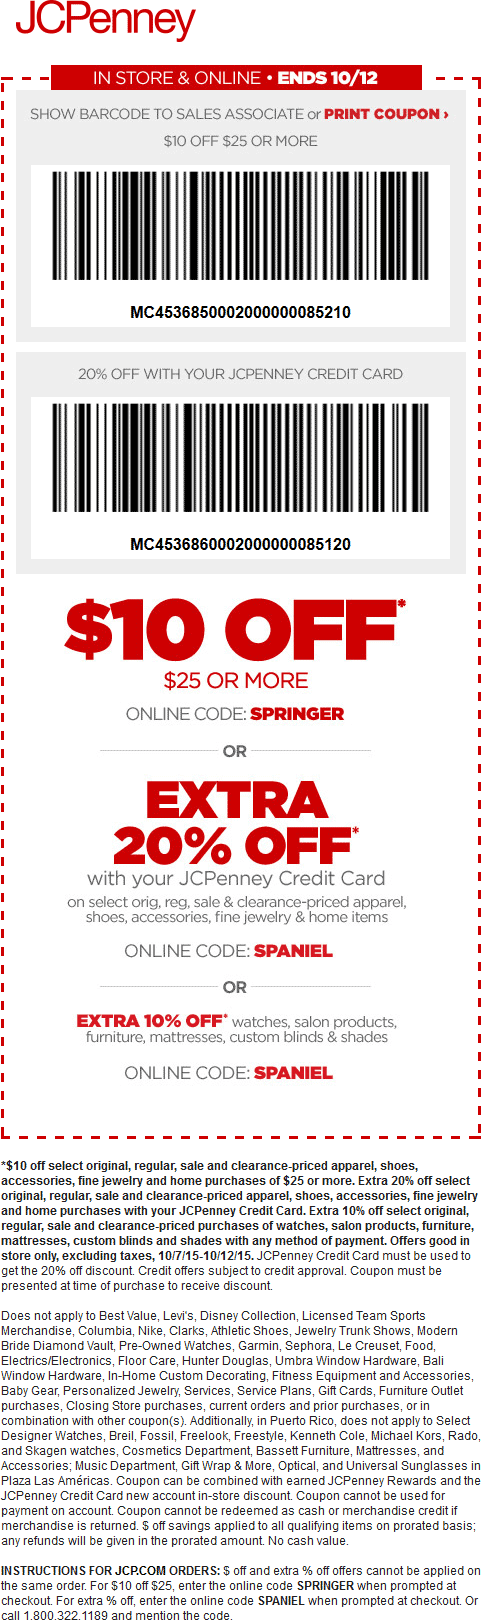 JCPenney Coupon June 2017 $10 off $25 at JCPenney, or online via promo code SPRINGER